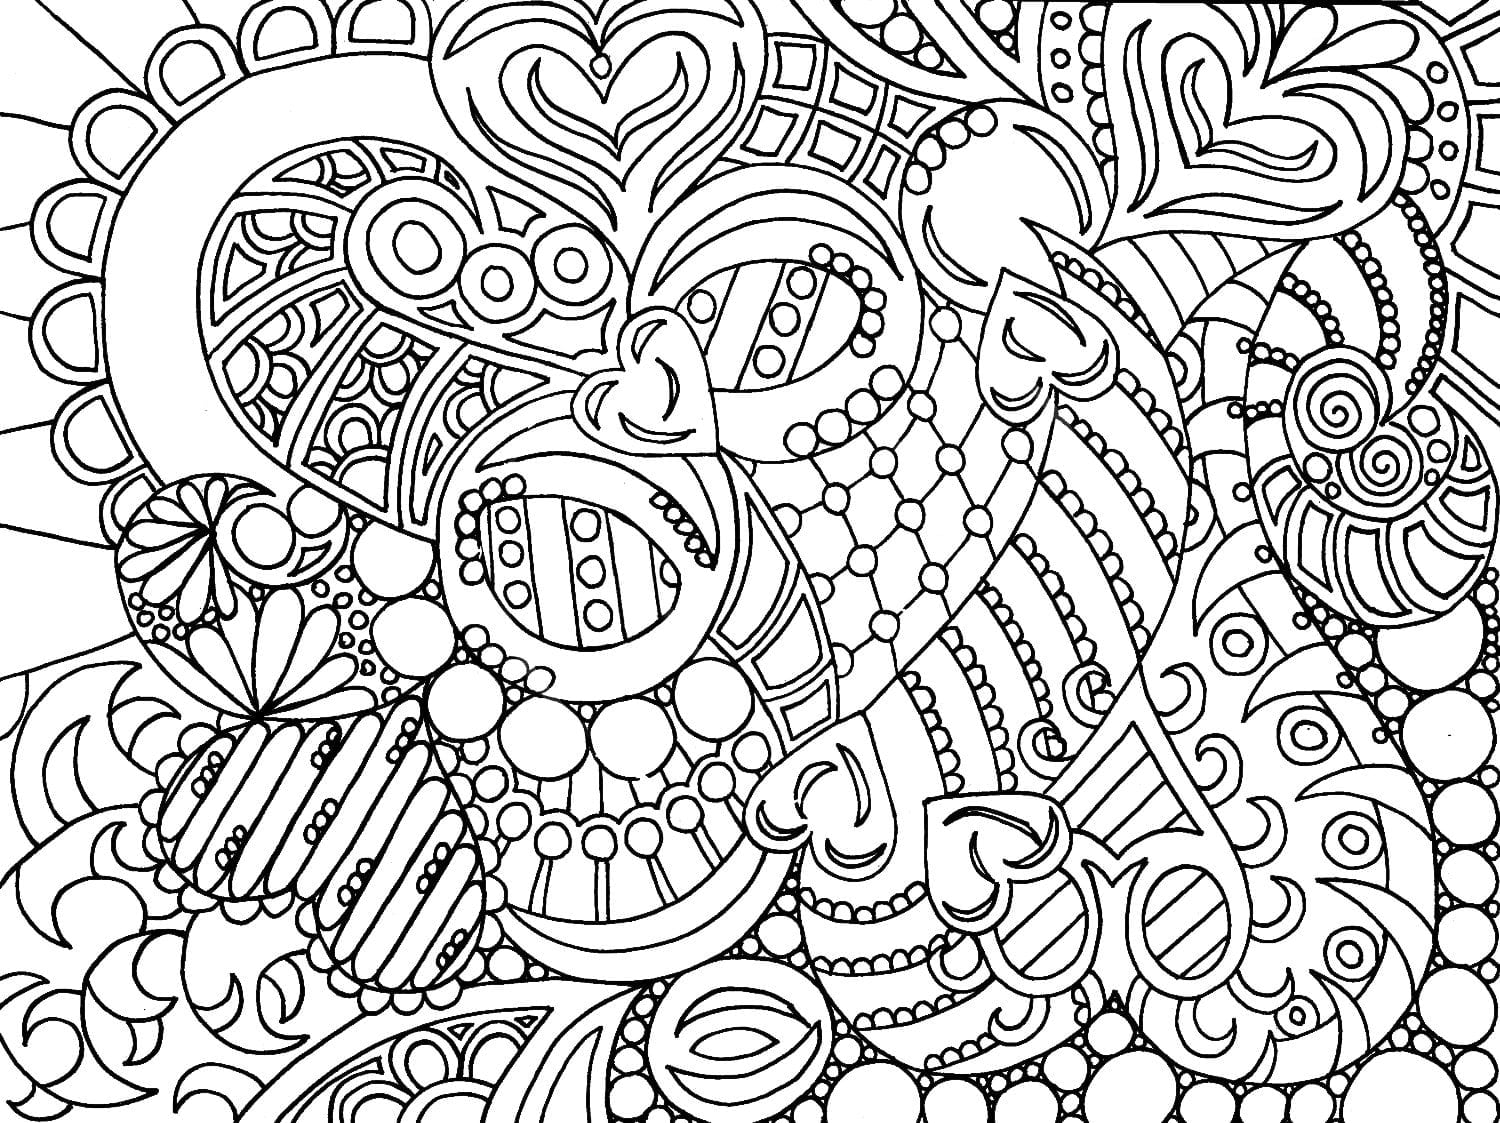 Fascinating Coloring Pages For Adults To Print Out Free Printable